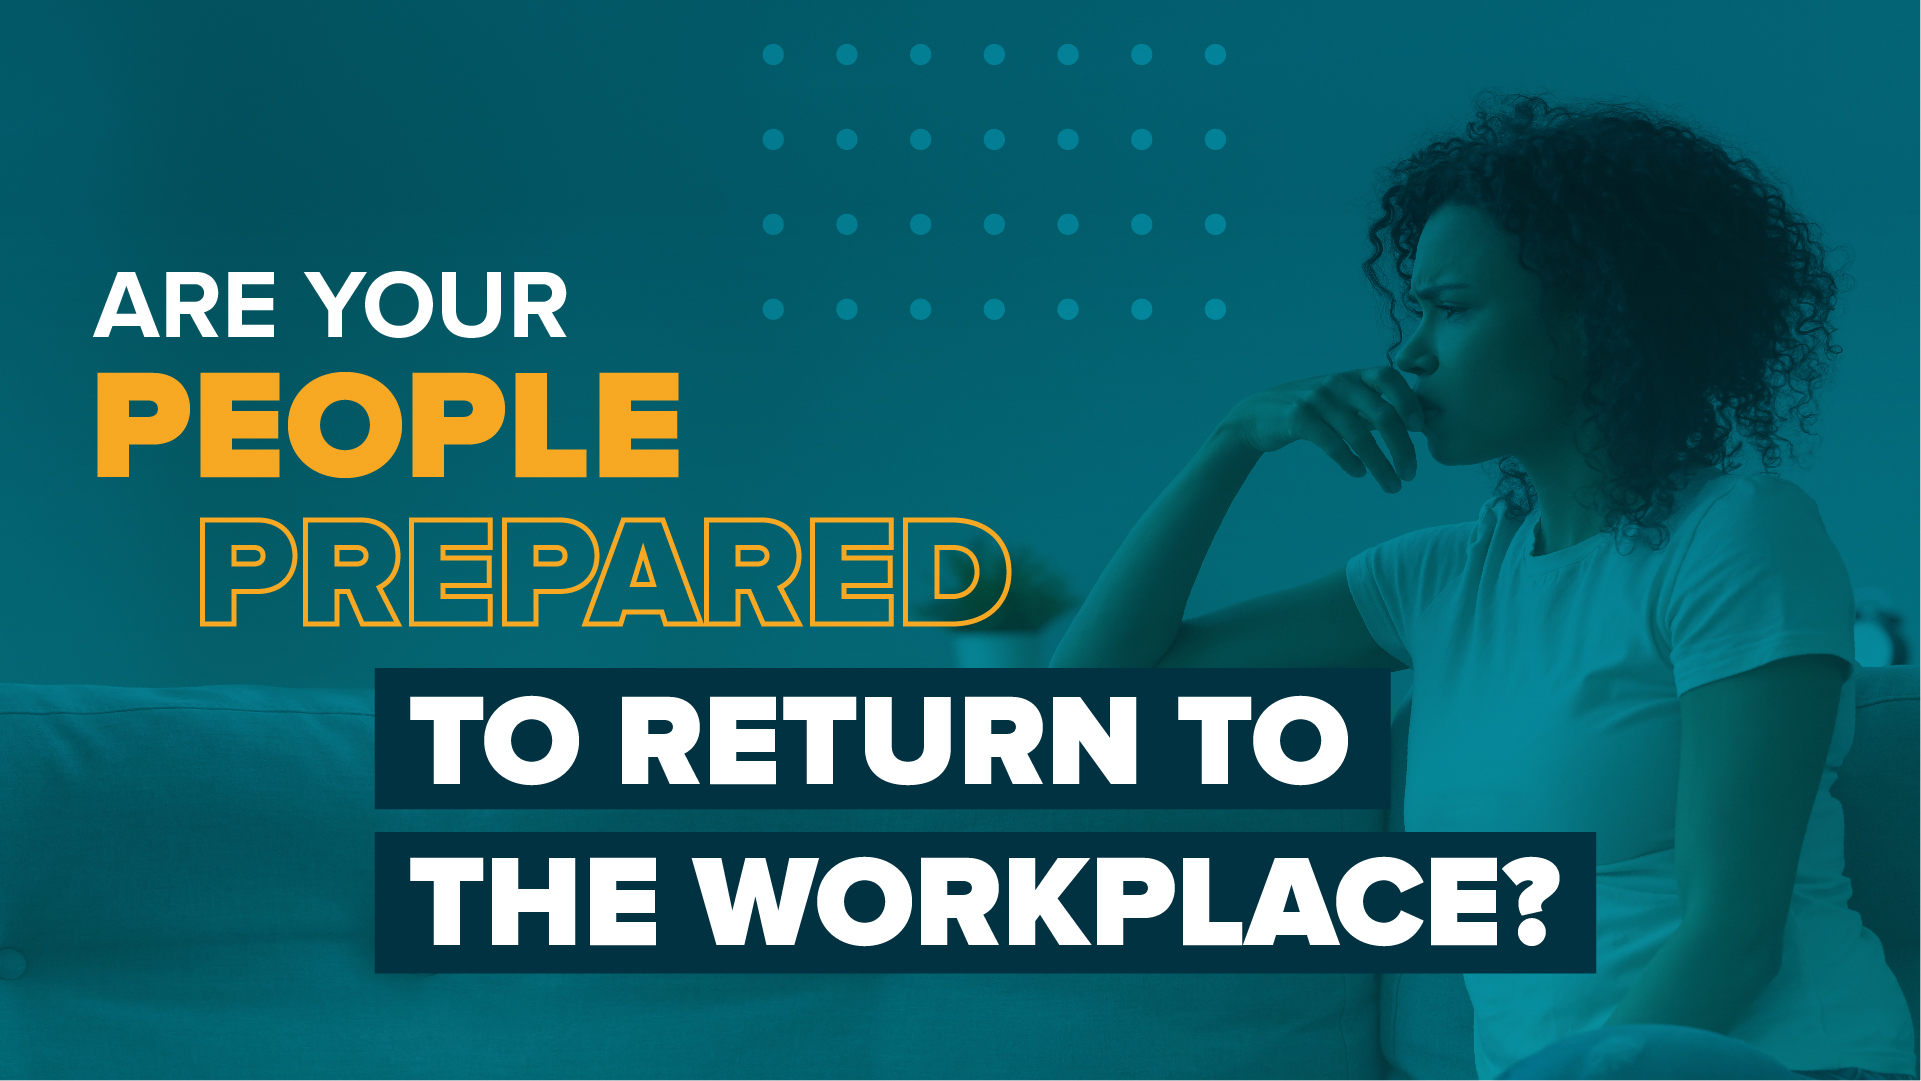 Are Your People Prepared To Return To The Workplace?